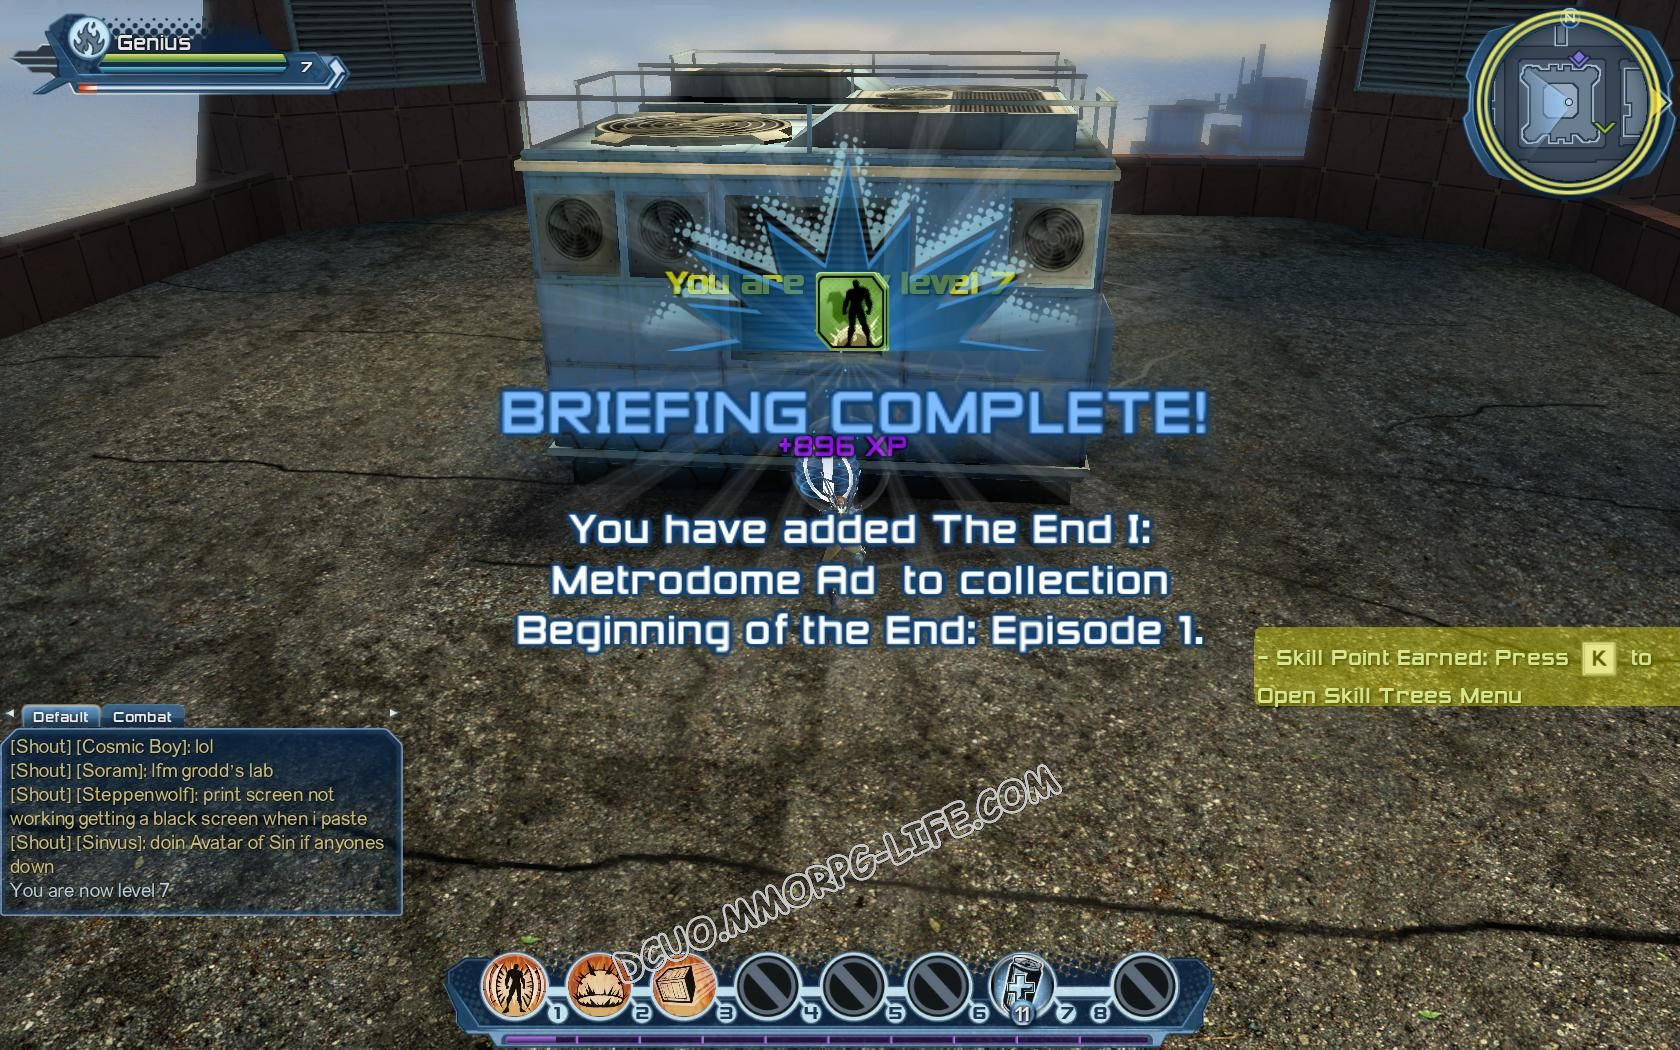 Briefing: Beginning of The End Episode 1, step 6 The End I: Metrodome Ad  image 312 middle size